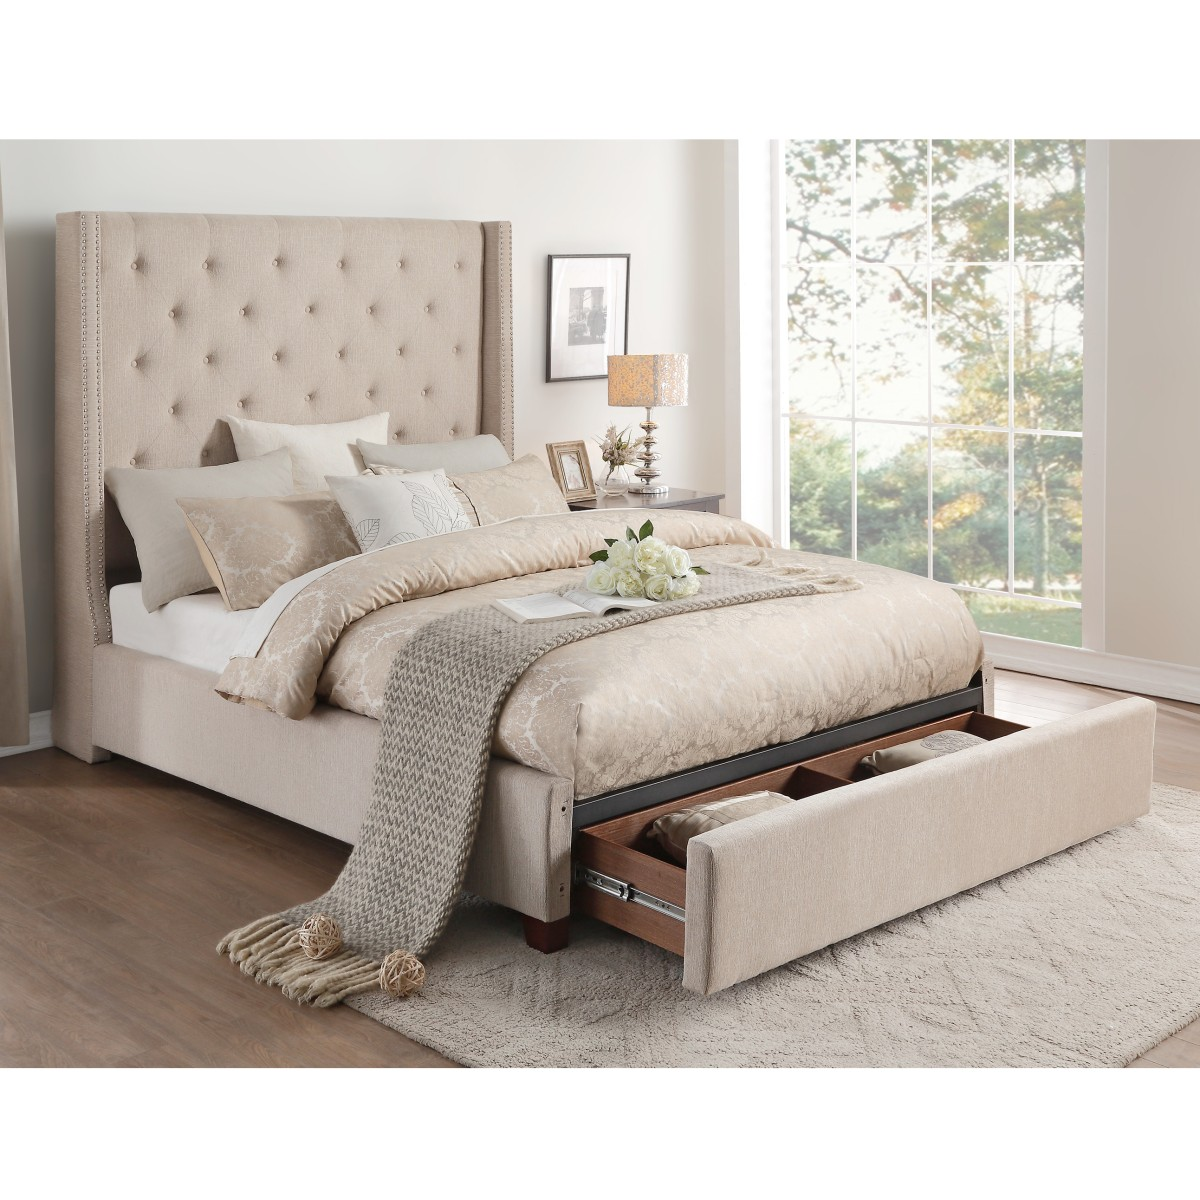 5877kbe 1ckdw California King Platform Bed With Storage Footboard